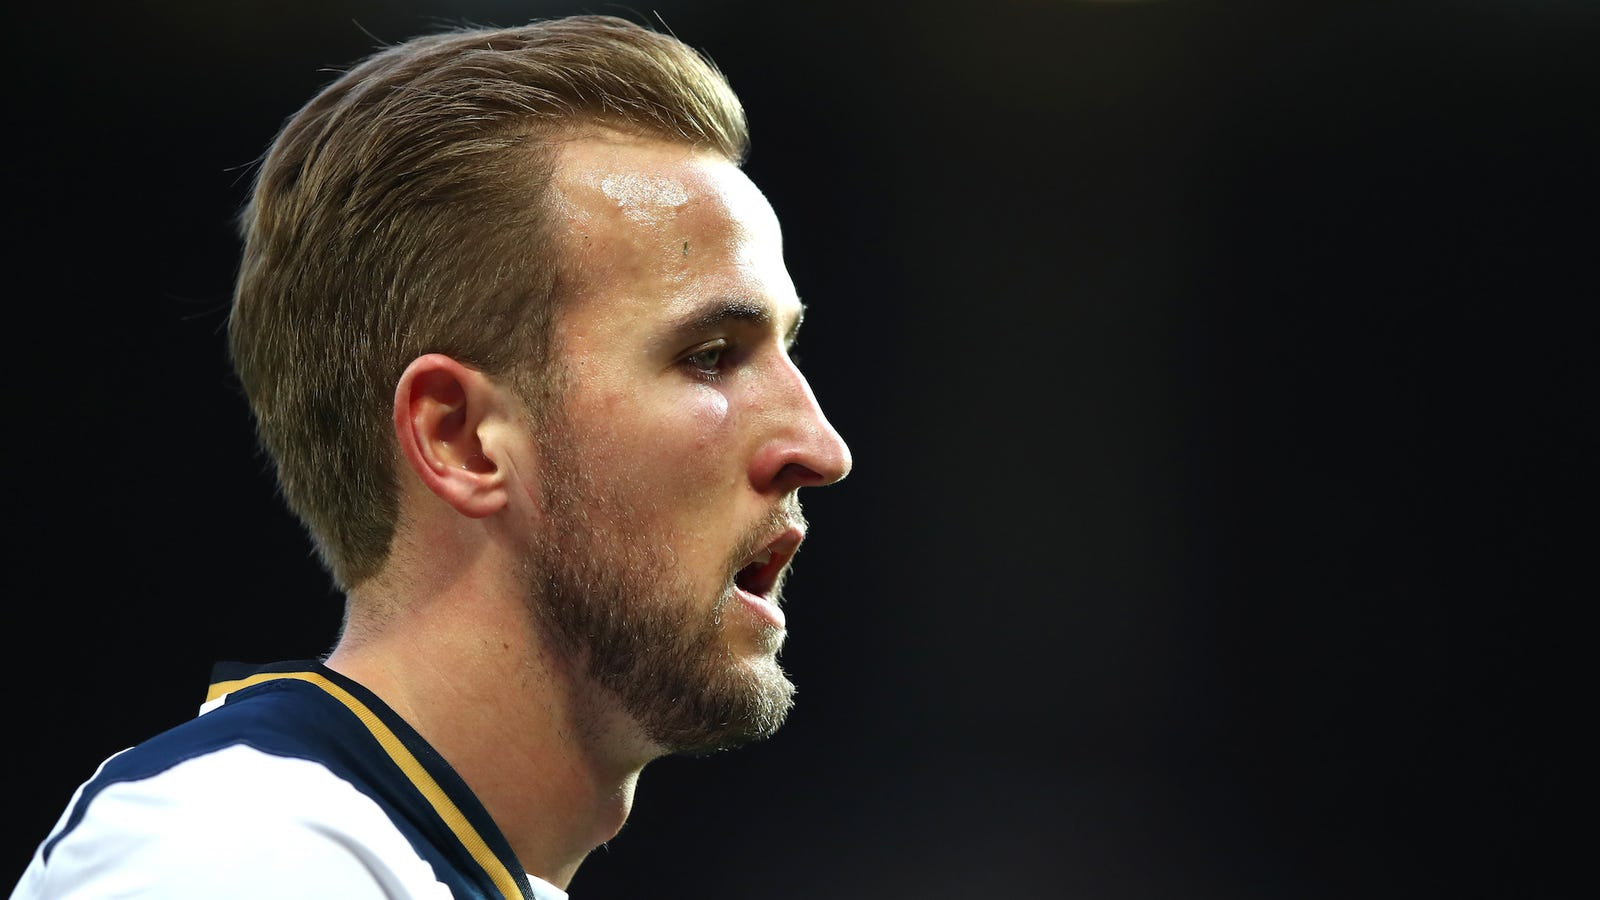 Harry Kane Doesnt Look Like A Great Player And Yet He Is